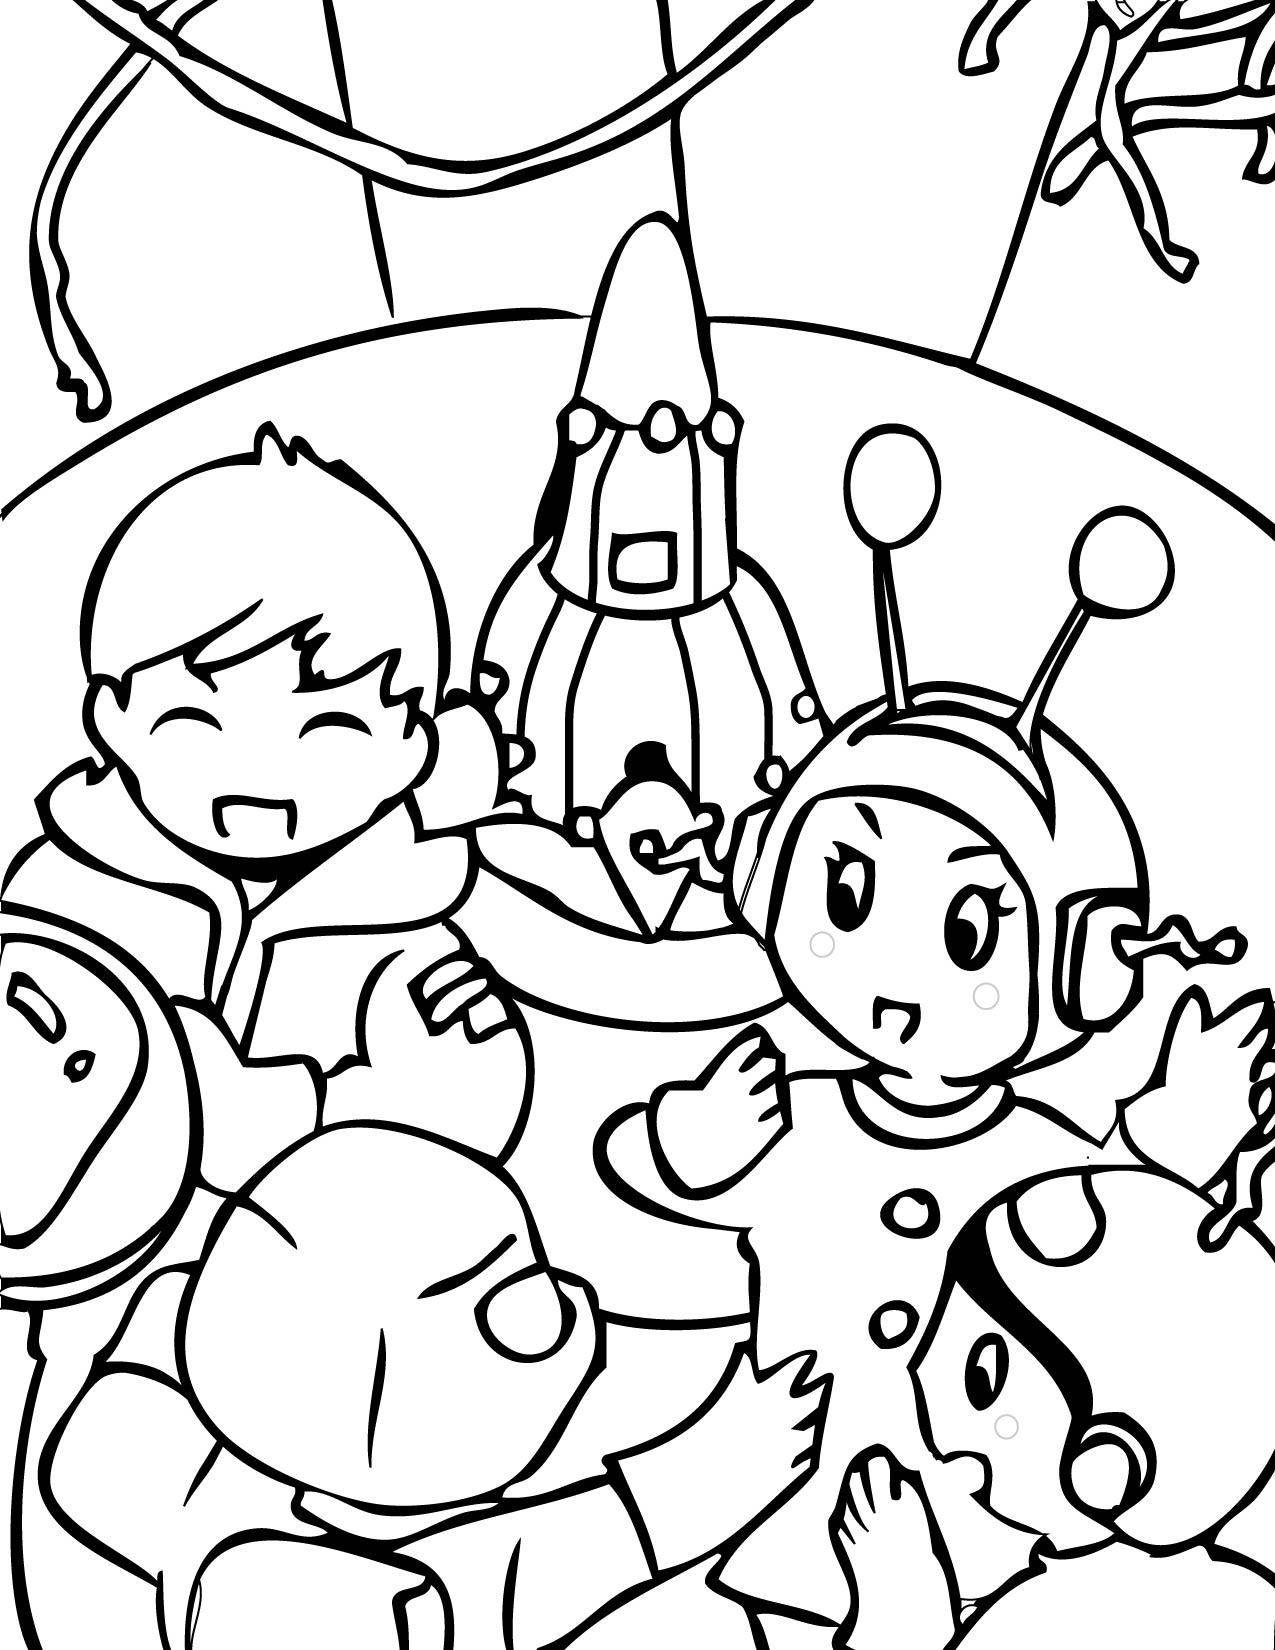 space coloring pages free - photo#43